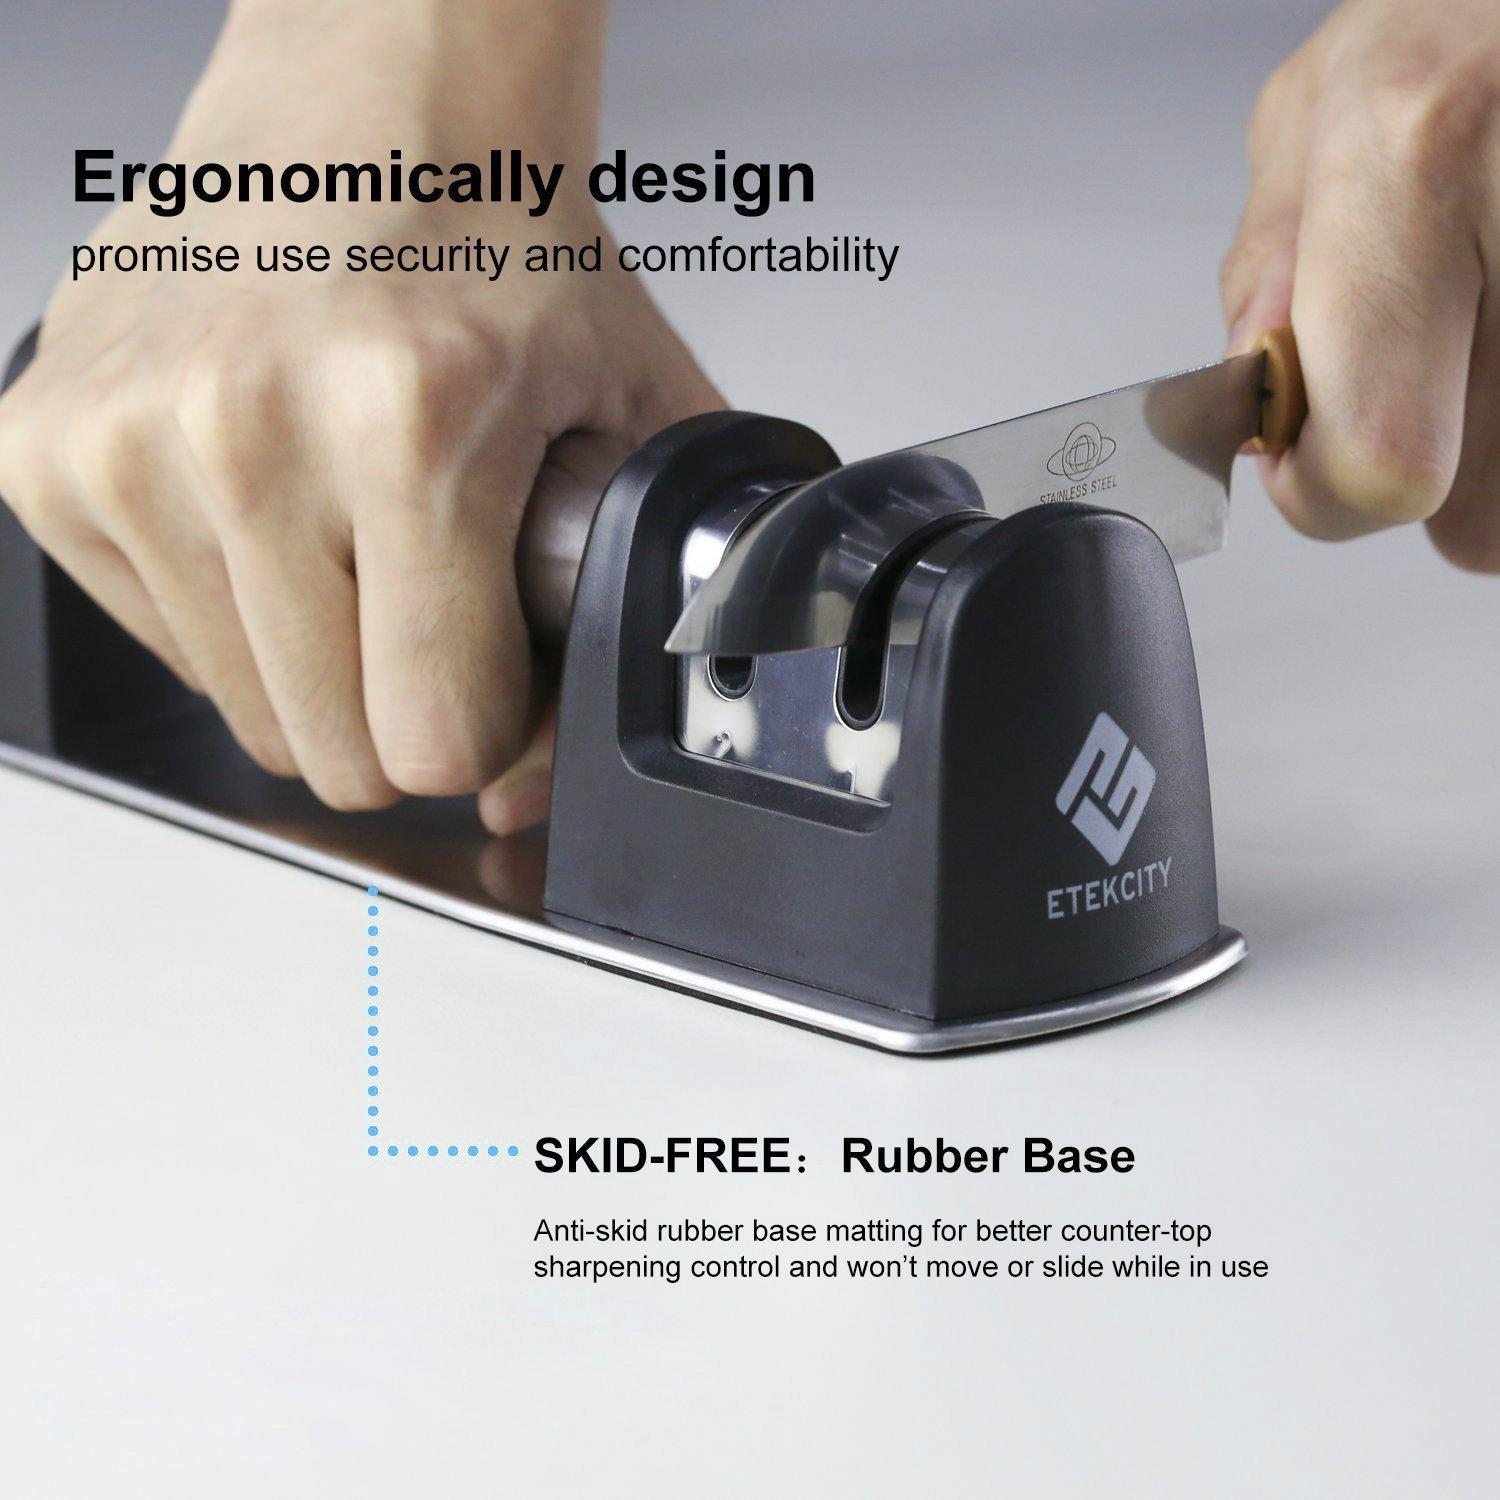 Etekcity Knife Sharpener: 2 Stage, Stable Skid-Free Grip